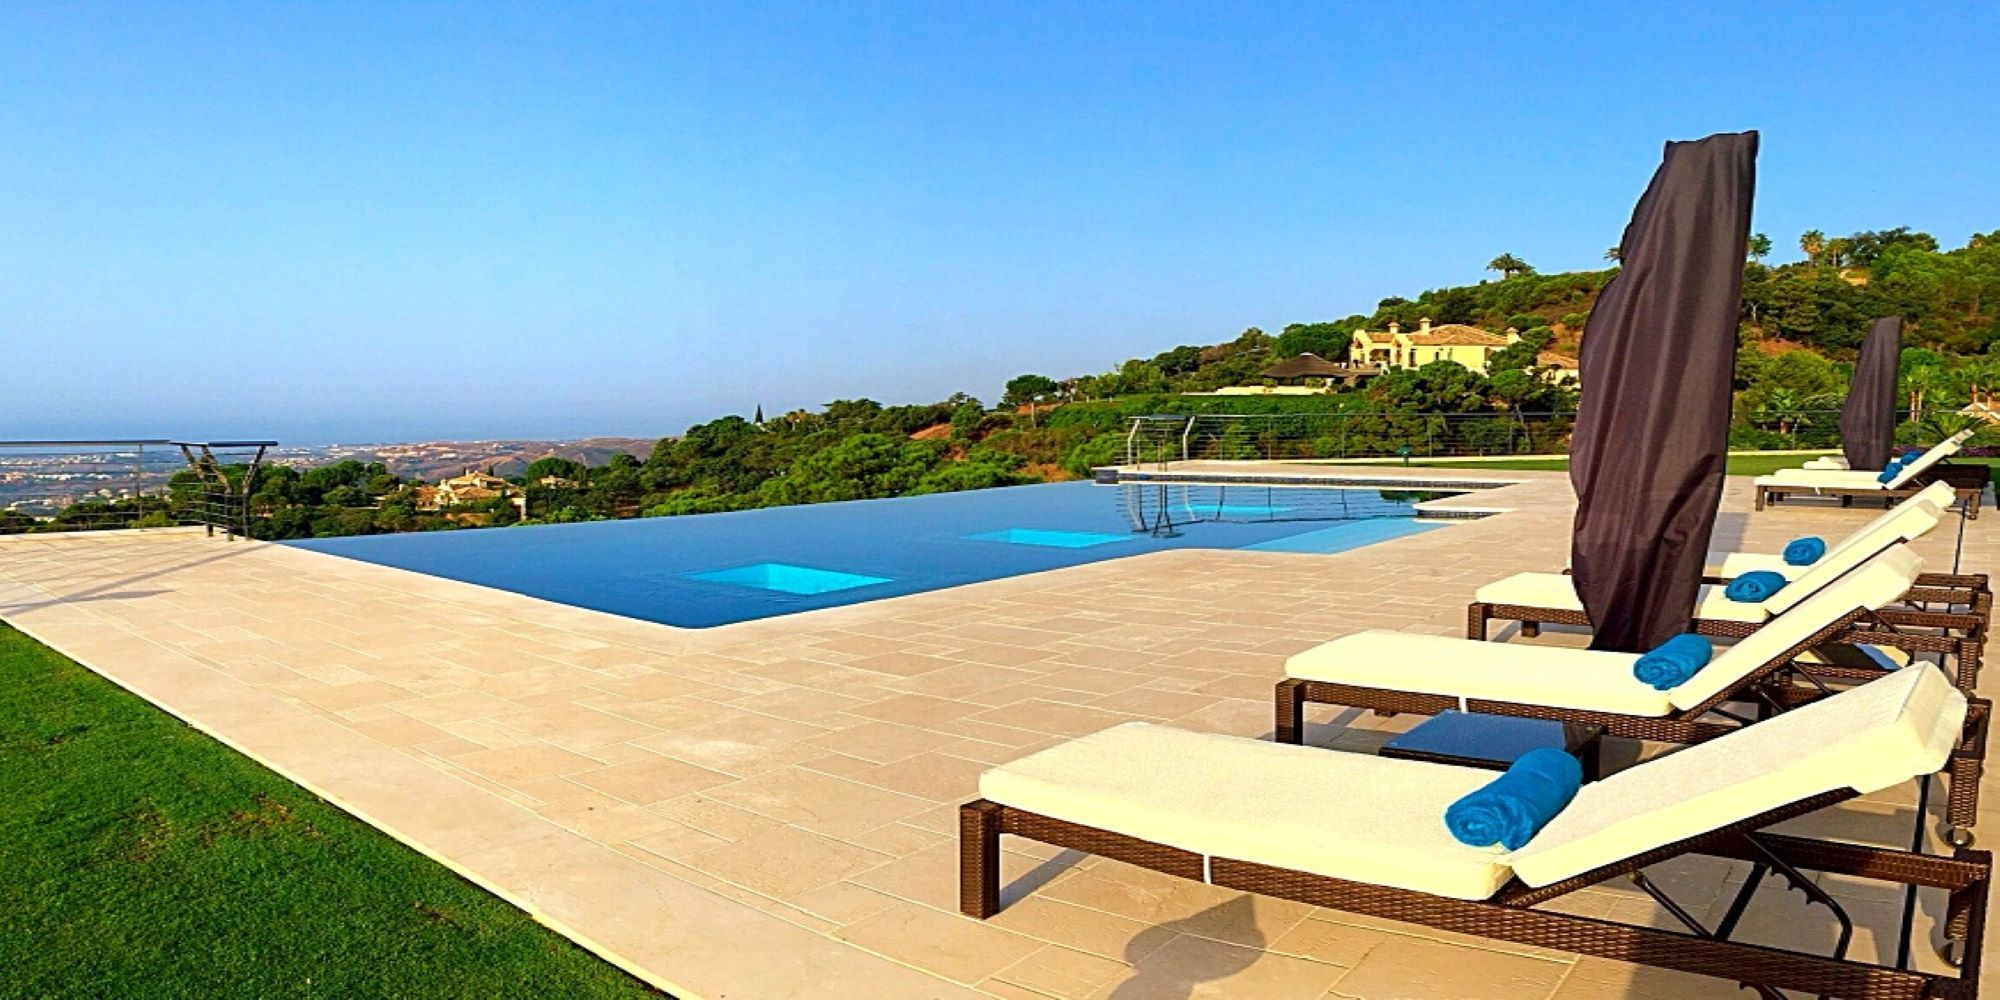 Swimming pool construction projects in Marbella: a variety of styles and materials